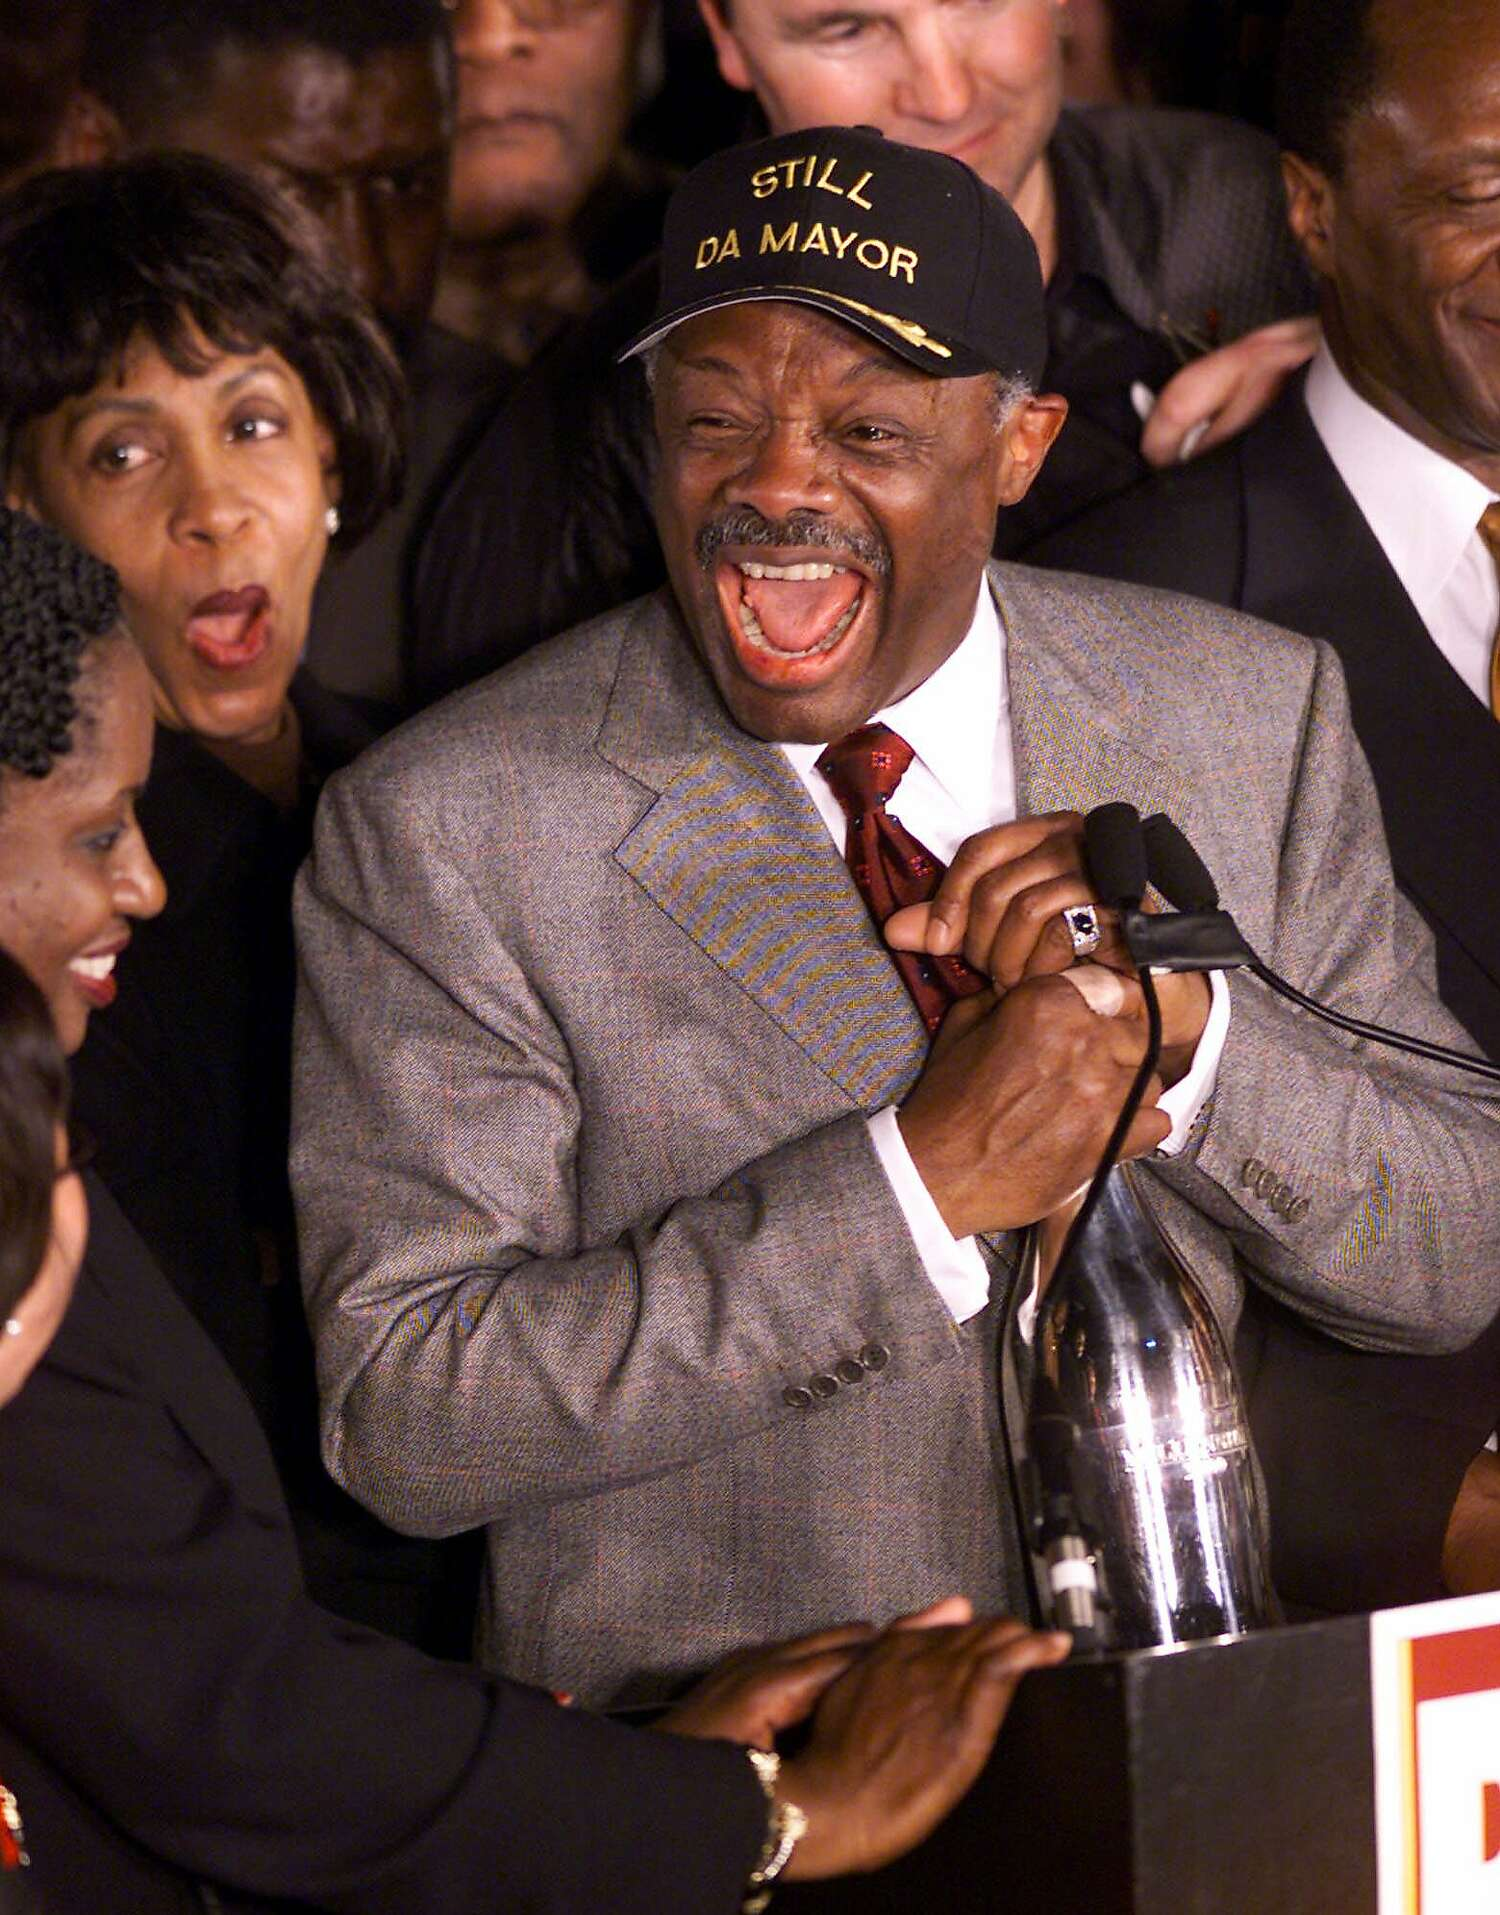 """San Francisco Mayor Willie Brown wears a gray suit and a hat that says """"Still Da Mayor"""" while holding a bottle of Champagne surrounded by supporters in 1999."""